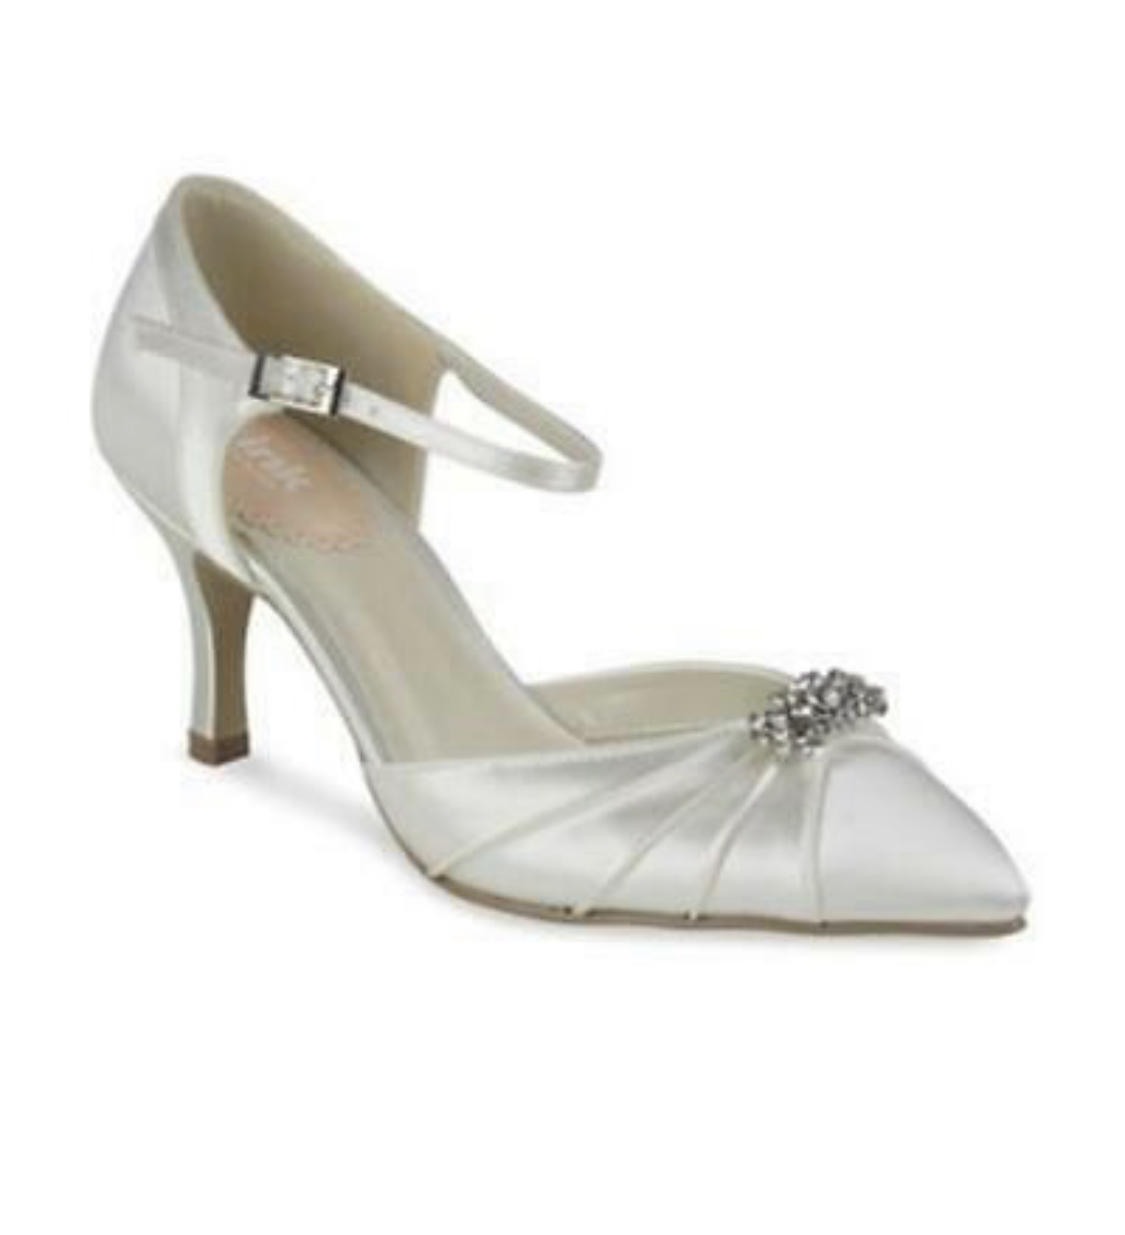 Pink Low Heel Wedding Shoes: Pink Paradox Elegance Ivory Low Heel Shoe